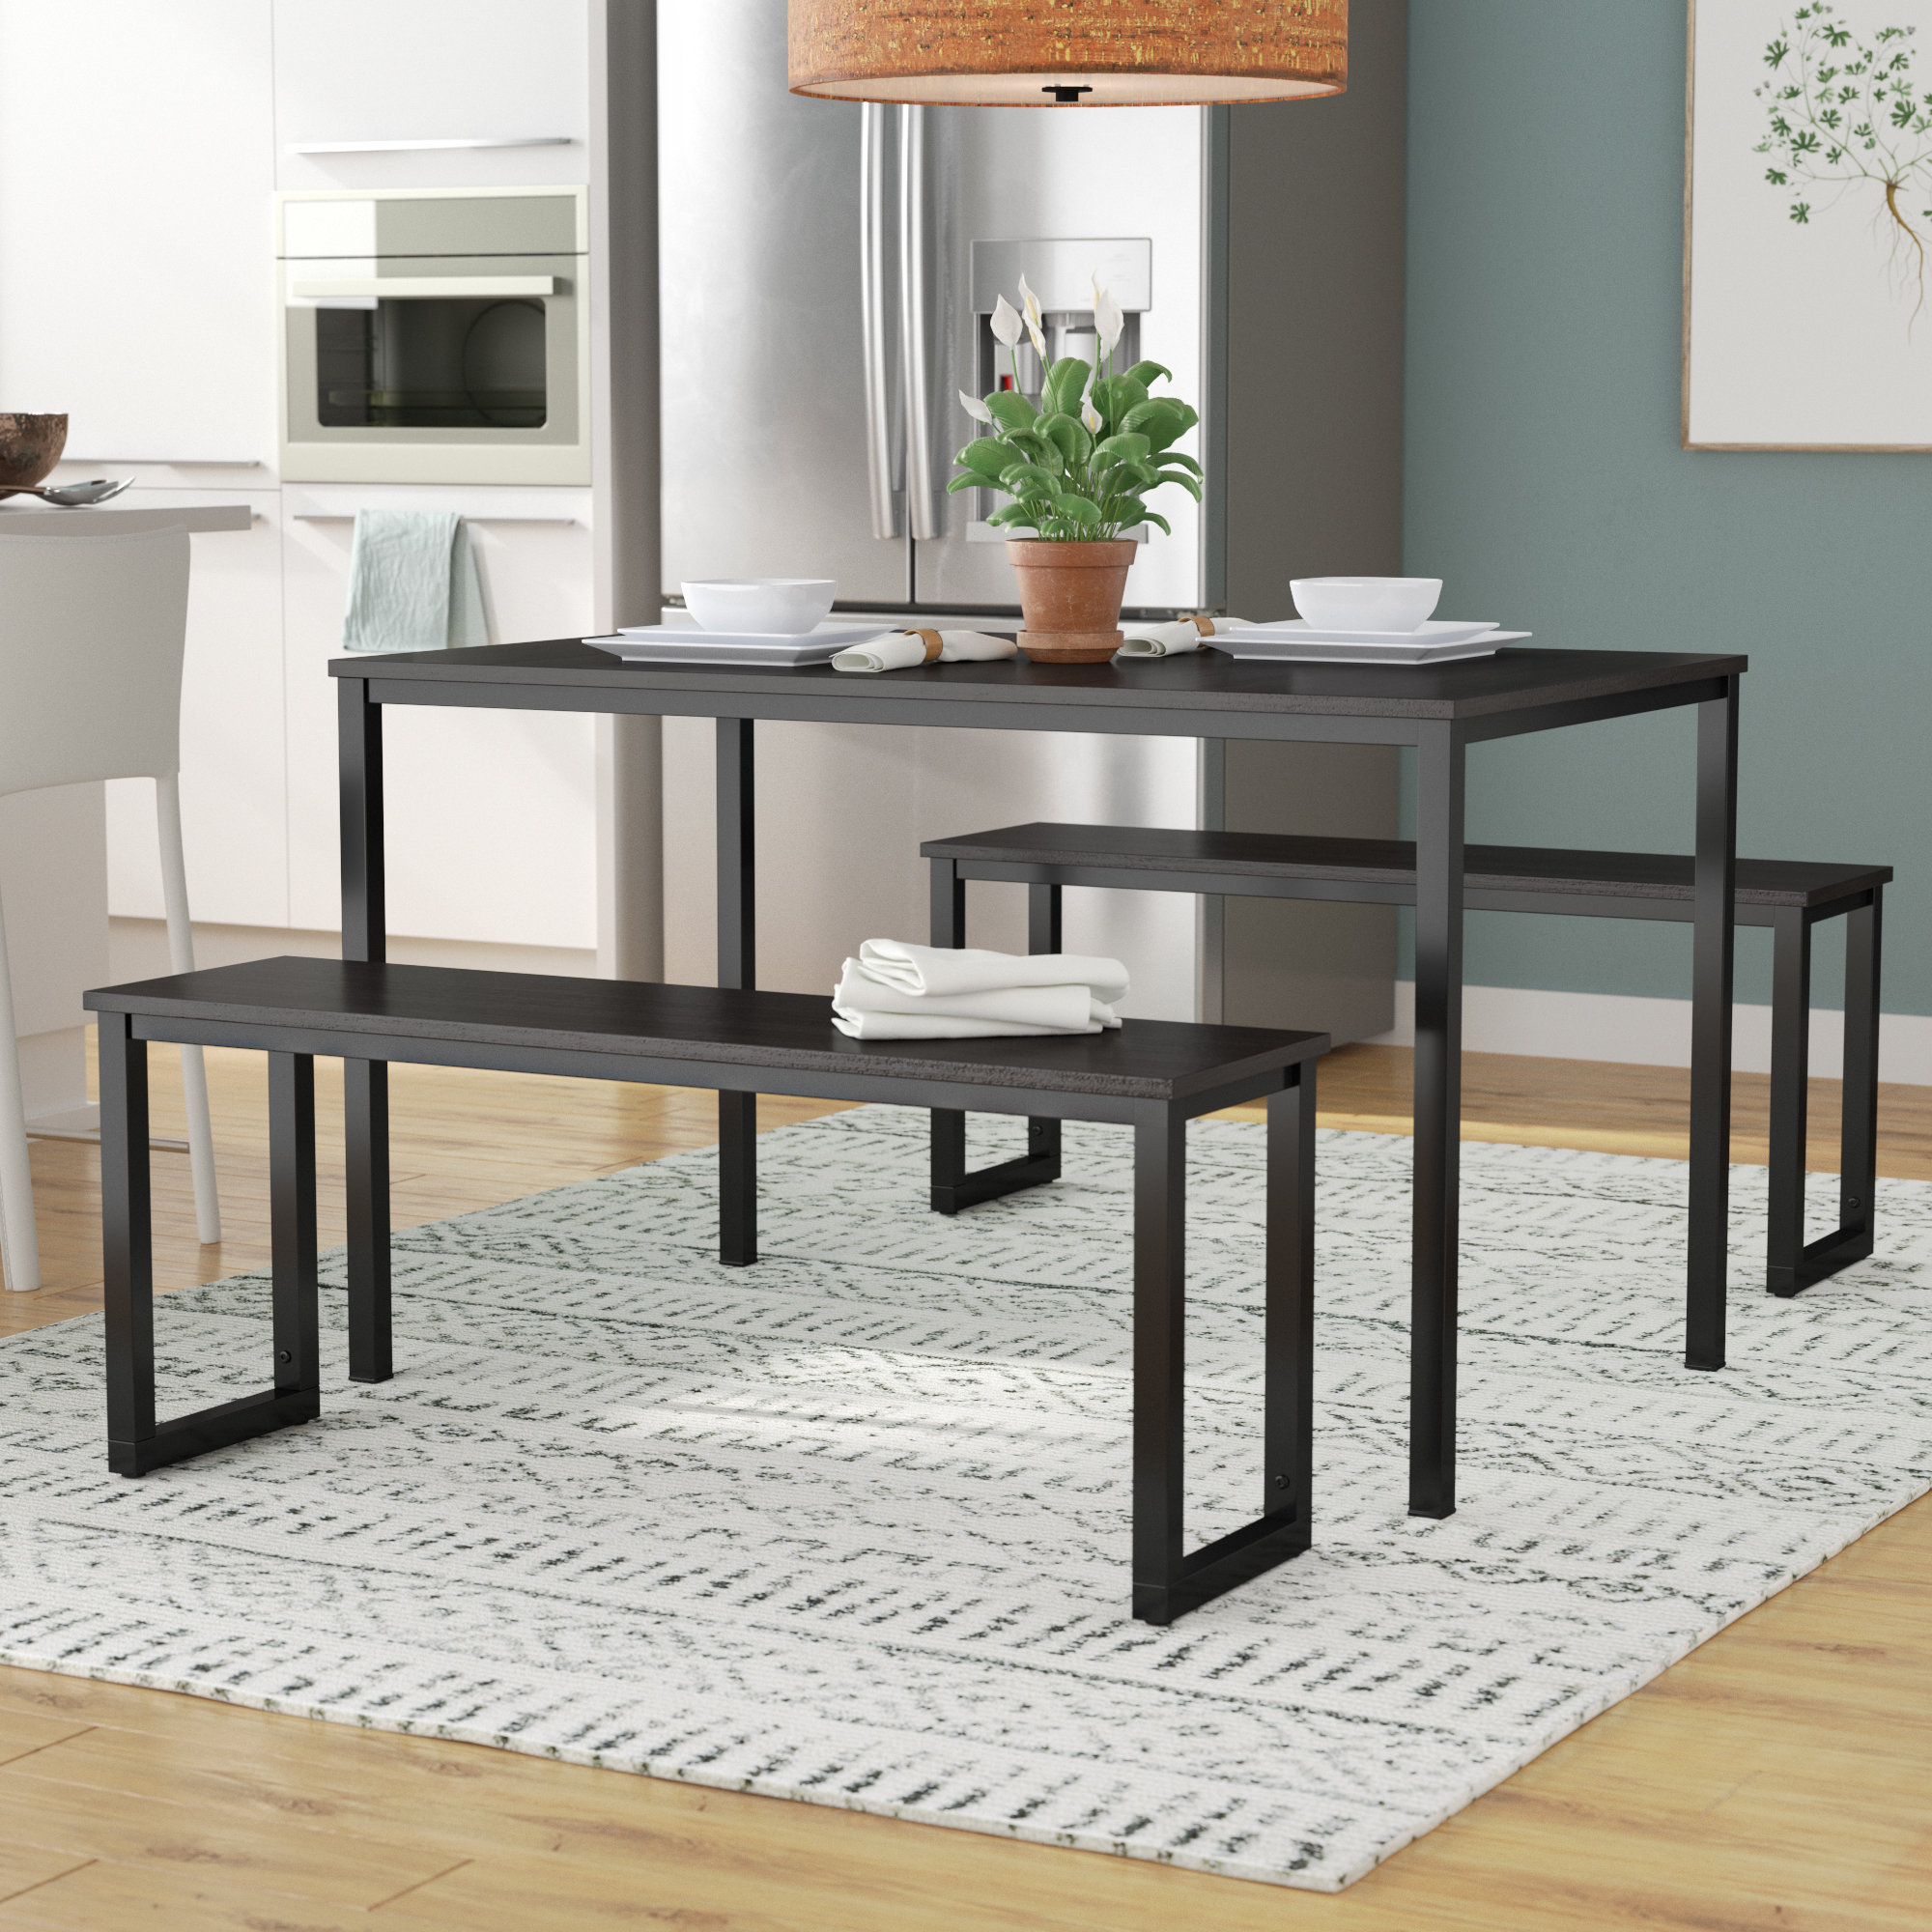 Wayfair With Regard To Well Known Partin 3 Piece Dining Sets (View 21 of 25)